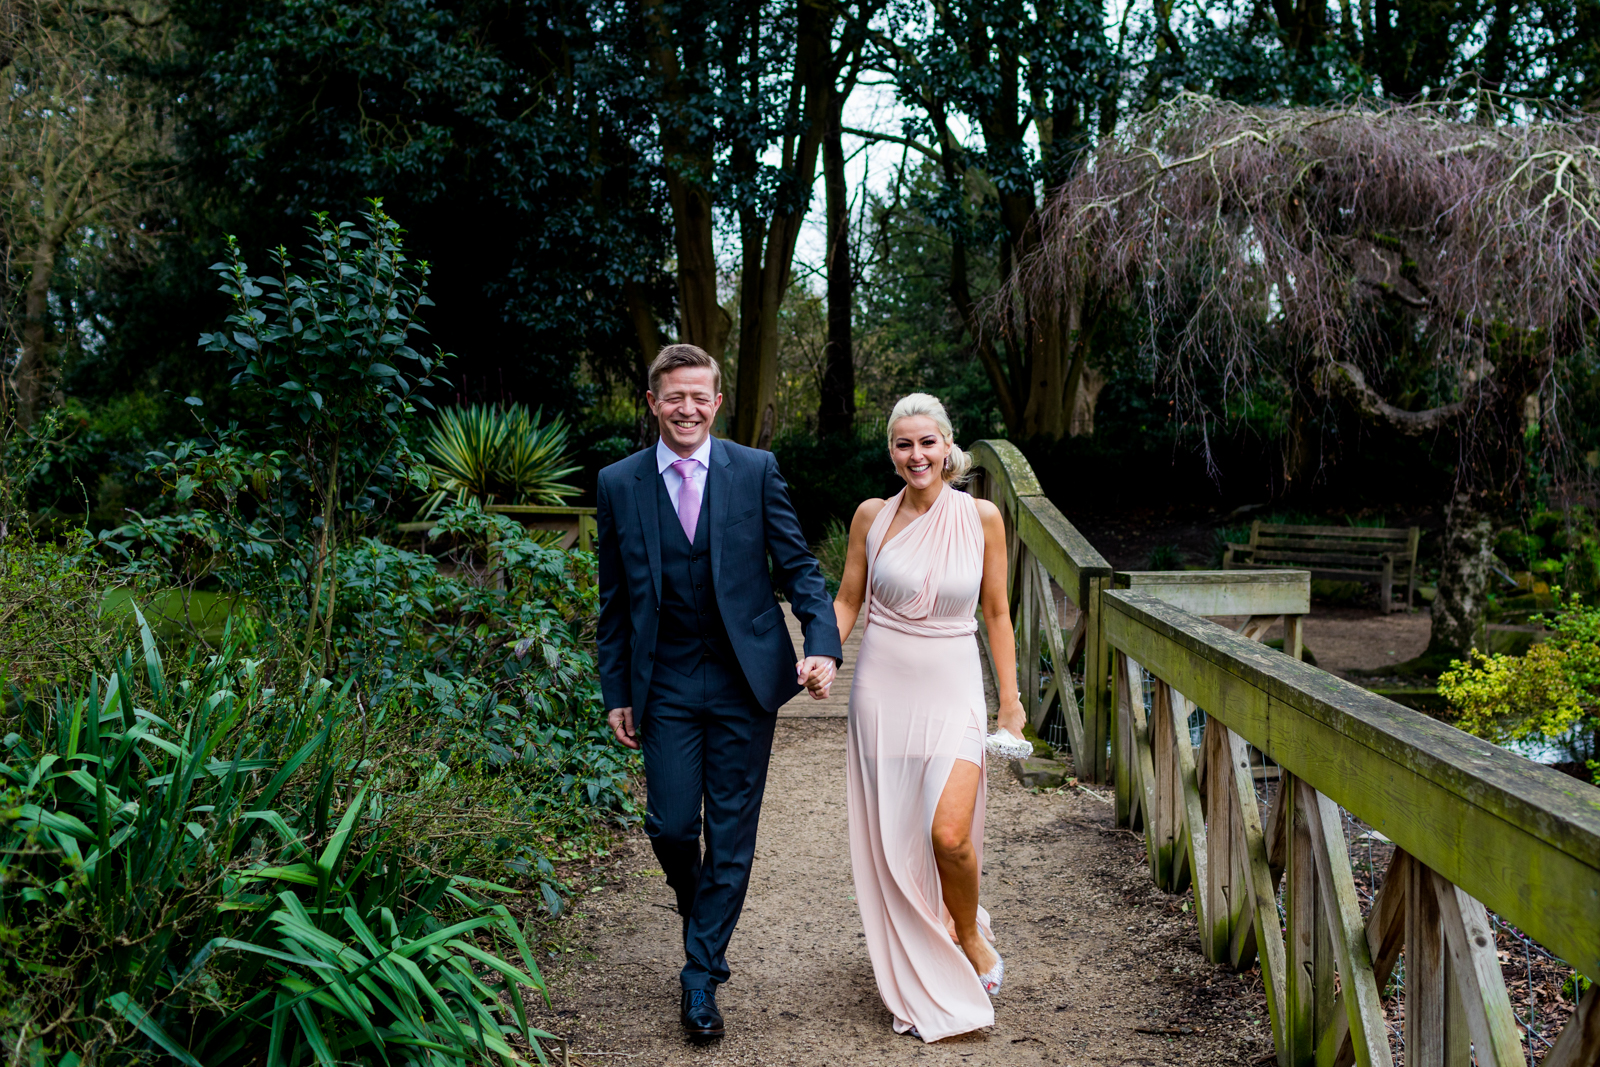 York House wedding photographer Richmond Upon Thames wedding